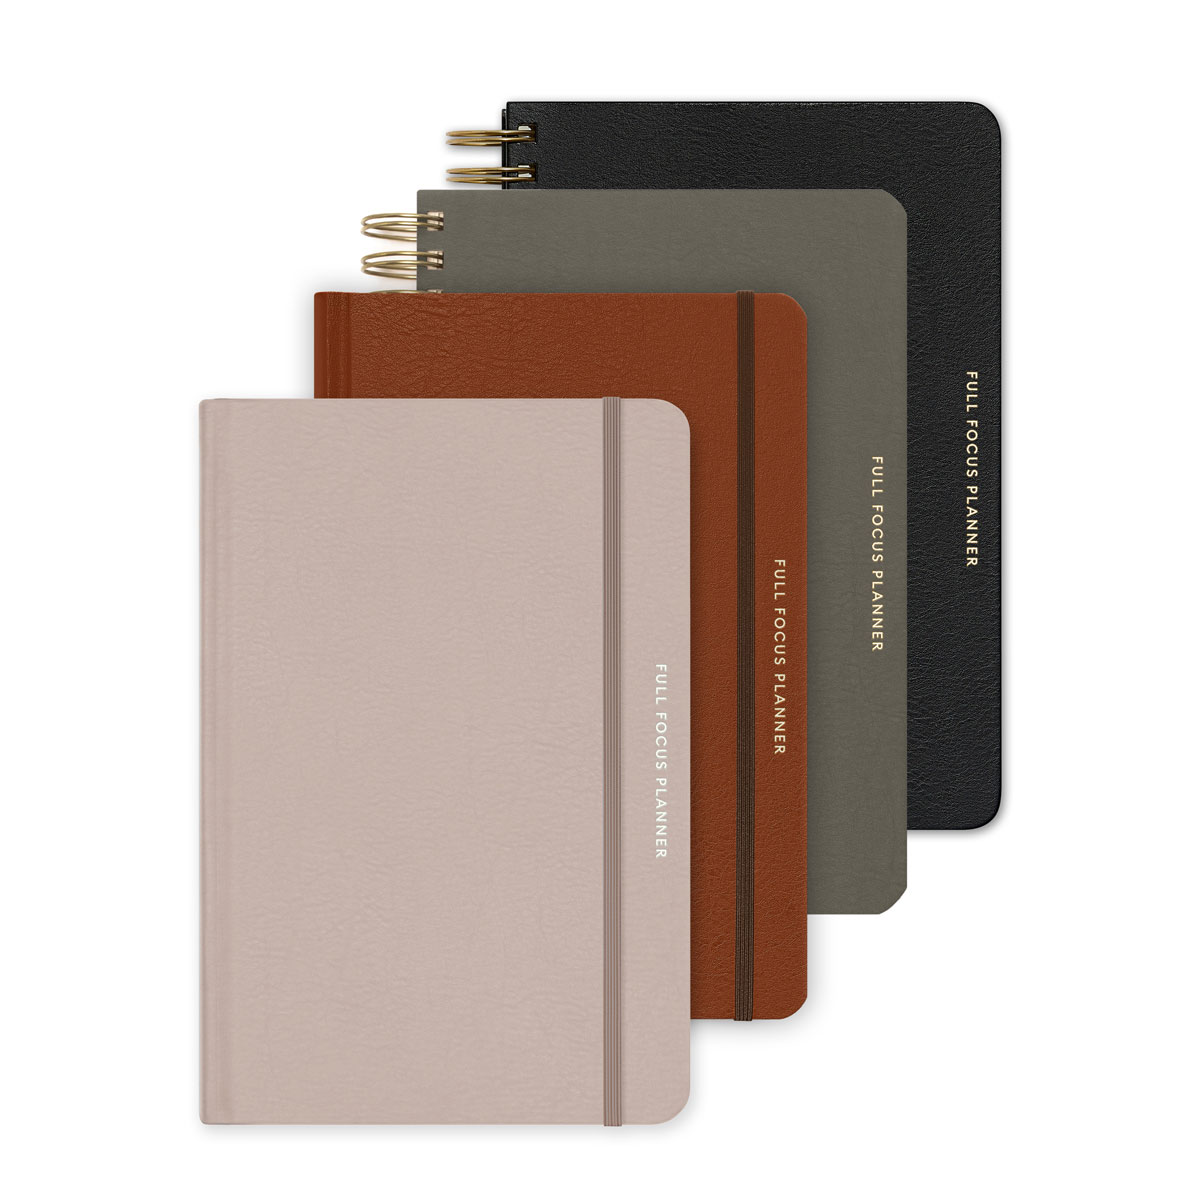 The Full Focus Leather Planner